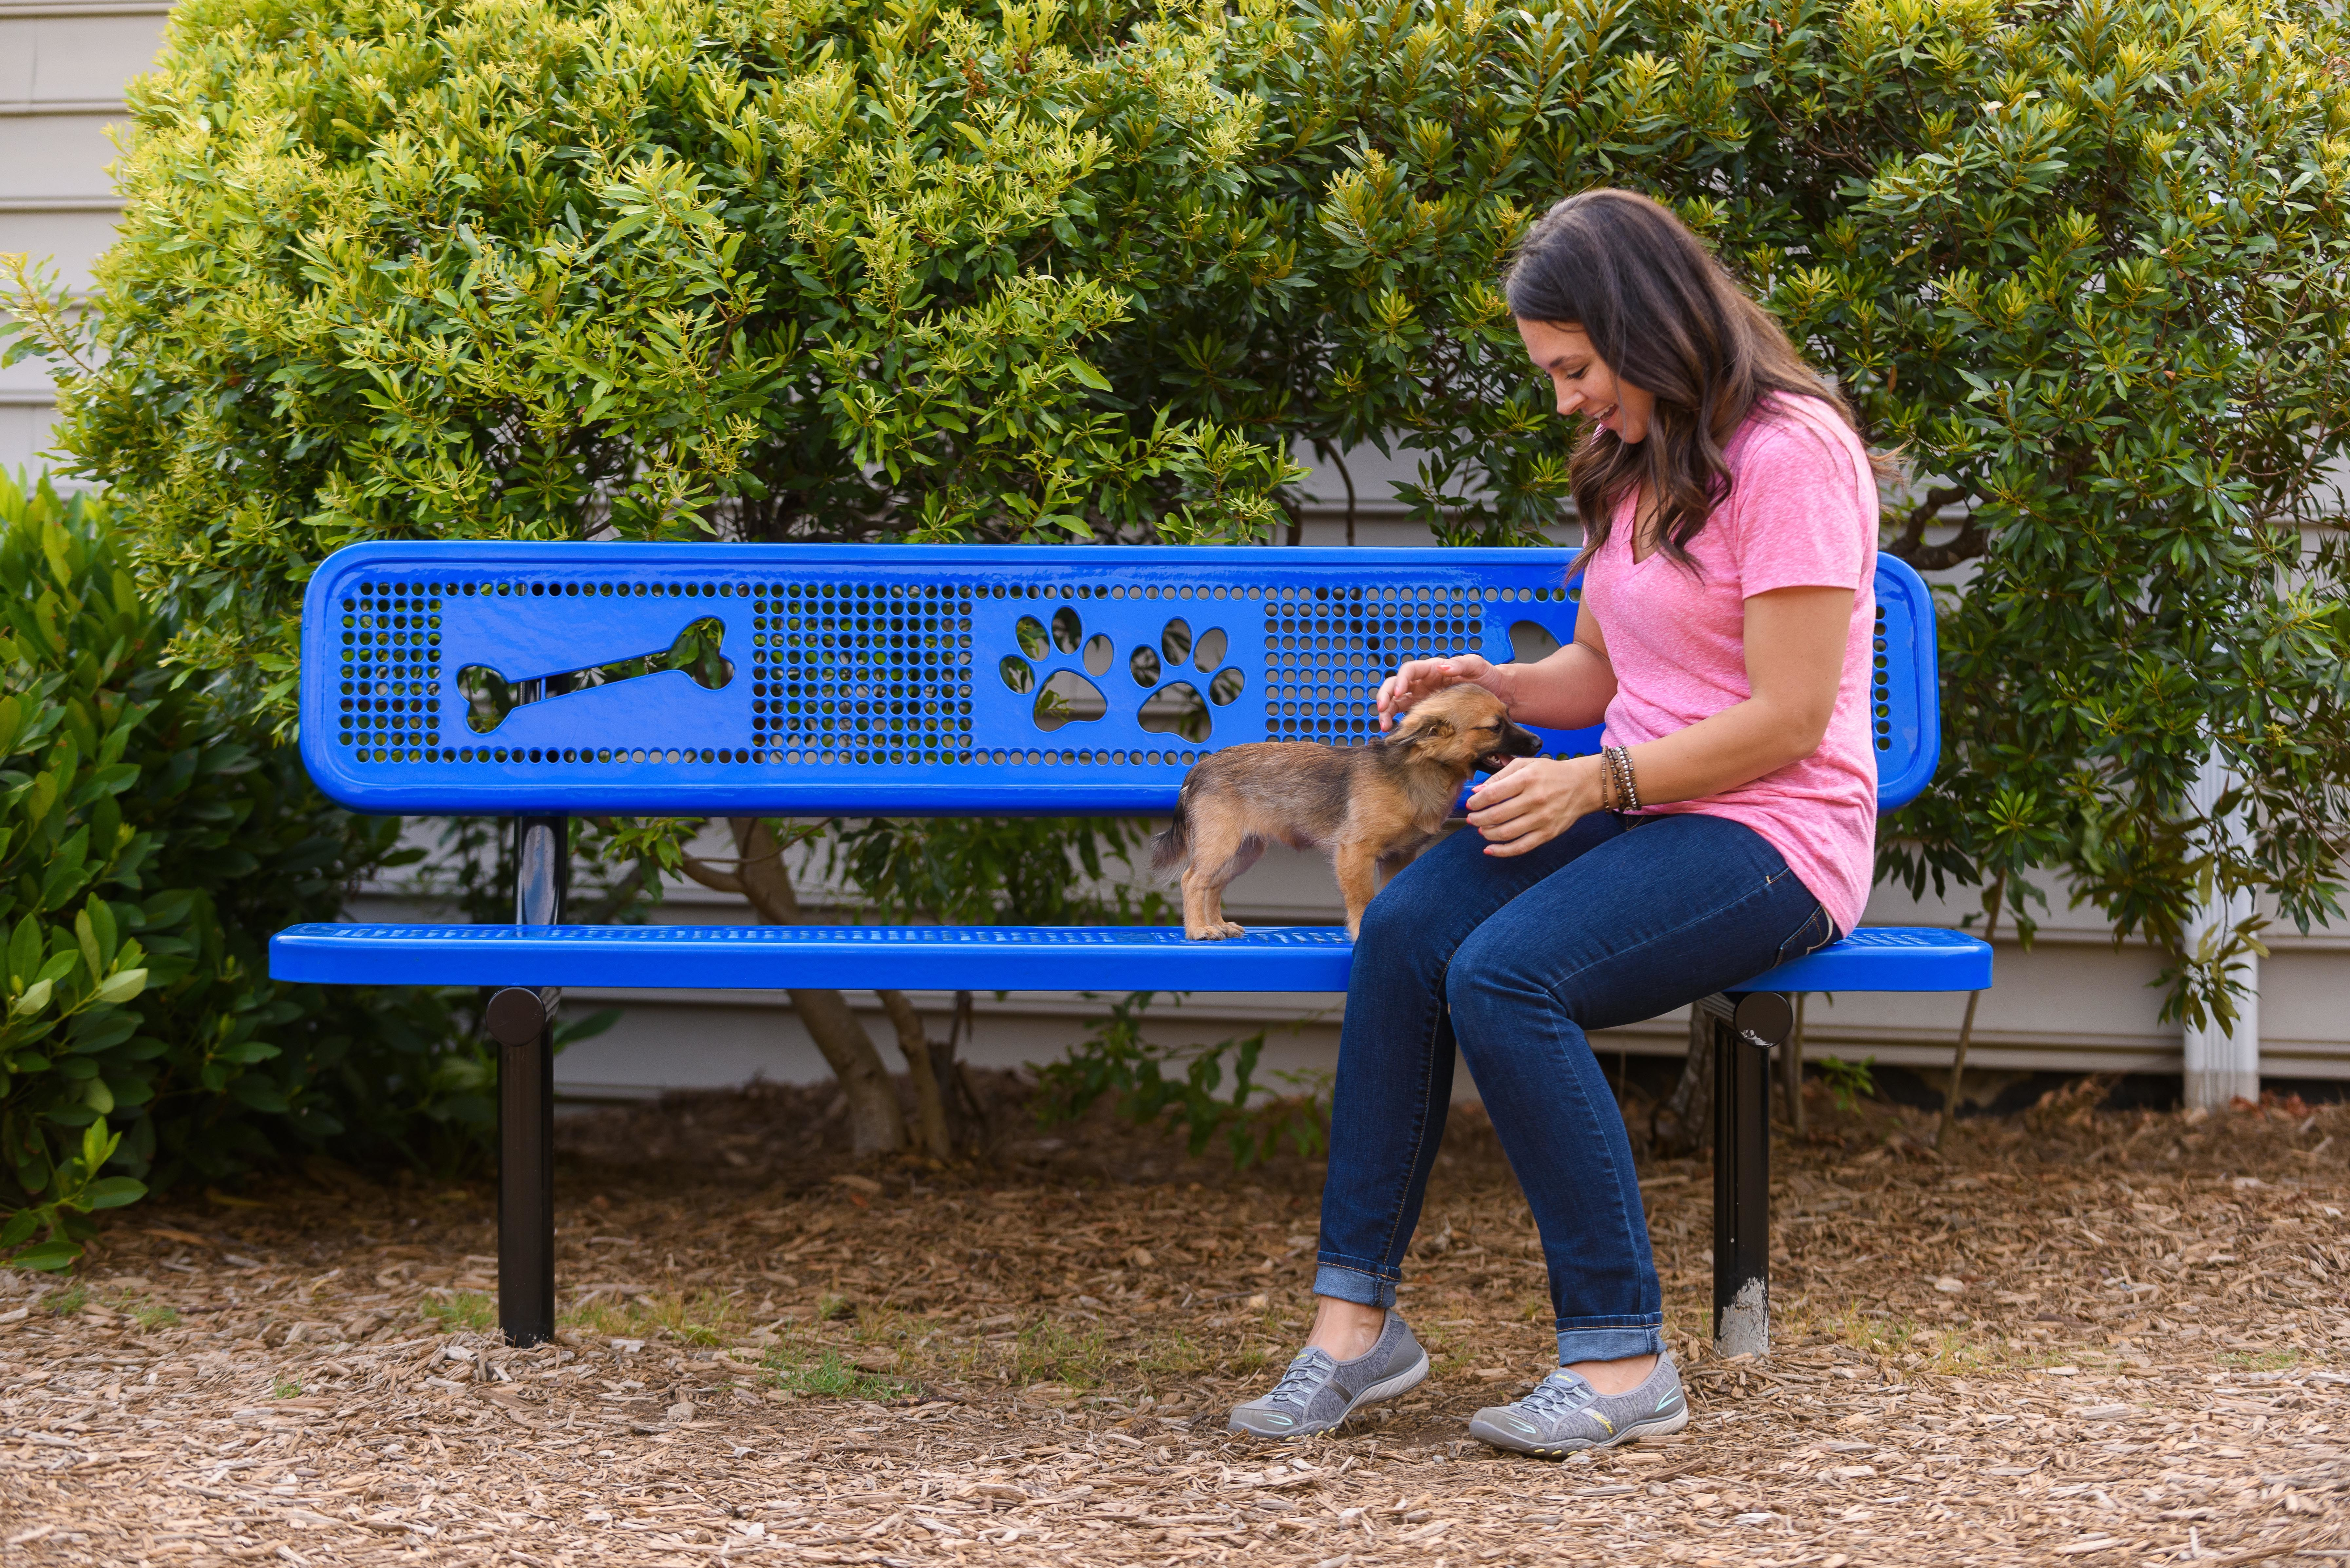 Sit & Stay Bench Lifestyle Image